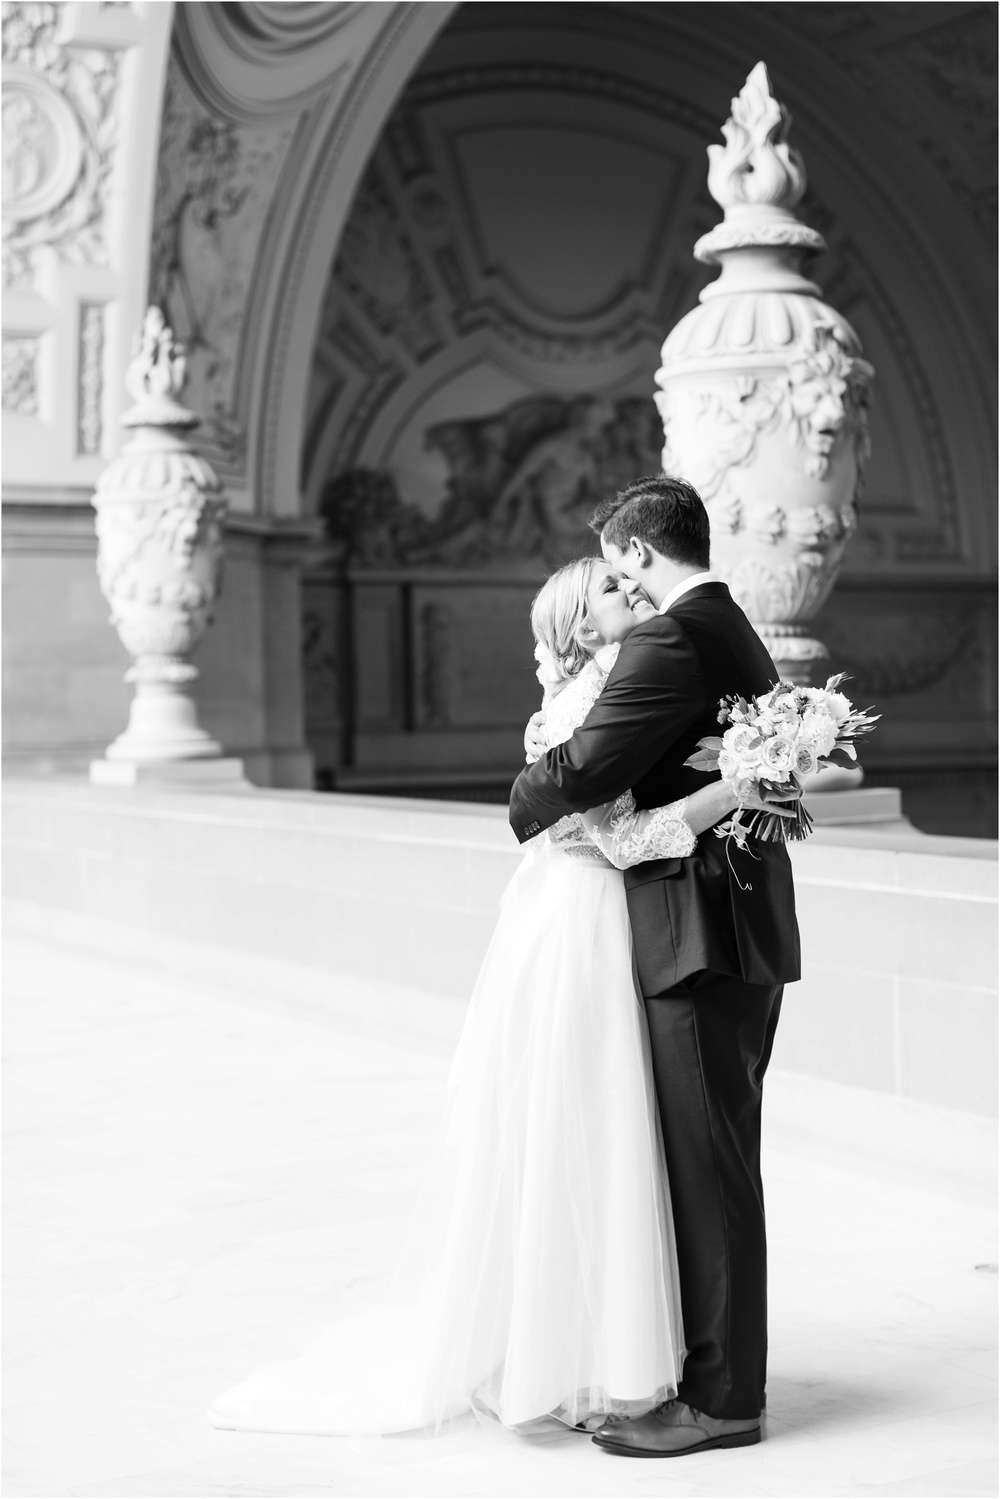 blueberryphotography.com | San Francisco City Hall Wedding | Blueberry Photography | Destination Wedding Photographer | Wedding Photography at SF City Hall